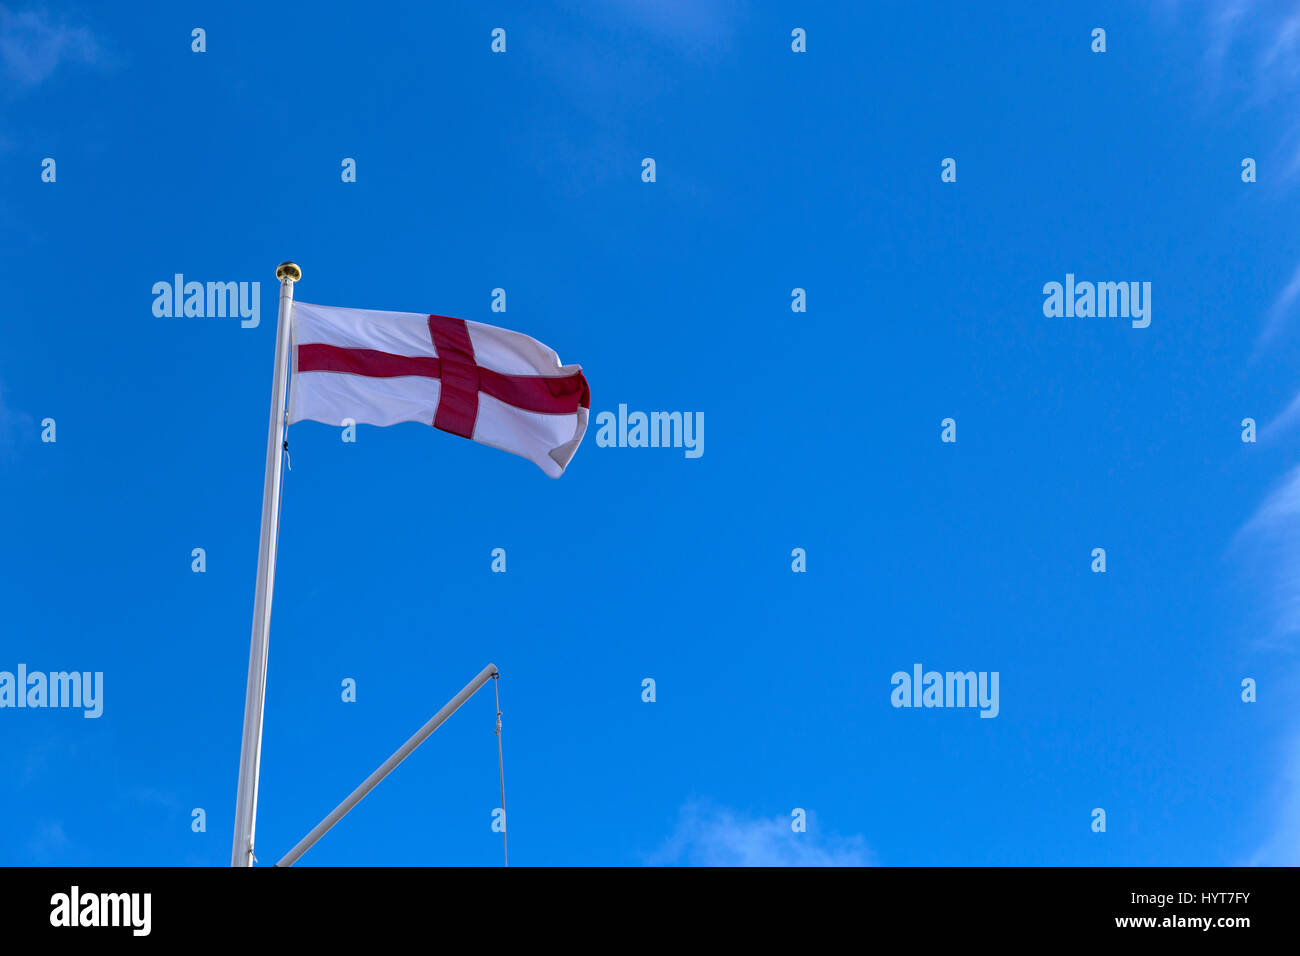 St Georges flag flying against a blue sky from a gold topped flagpole. - Stock Image